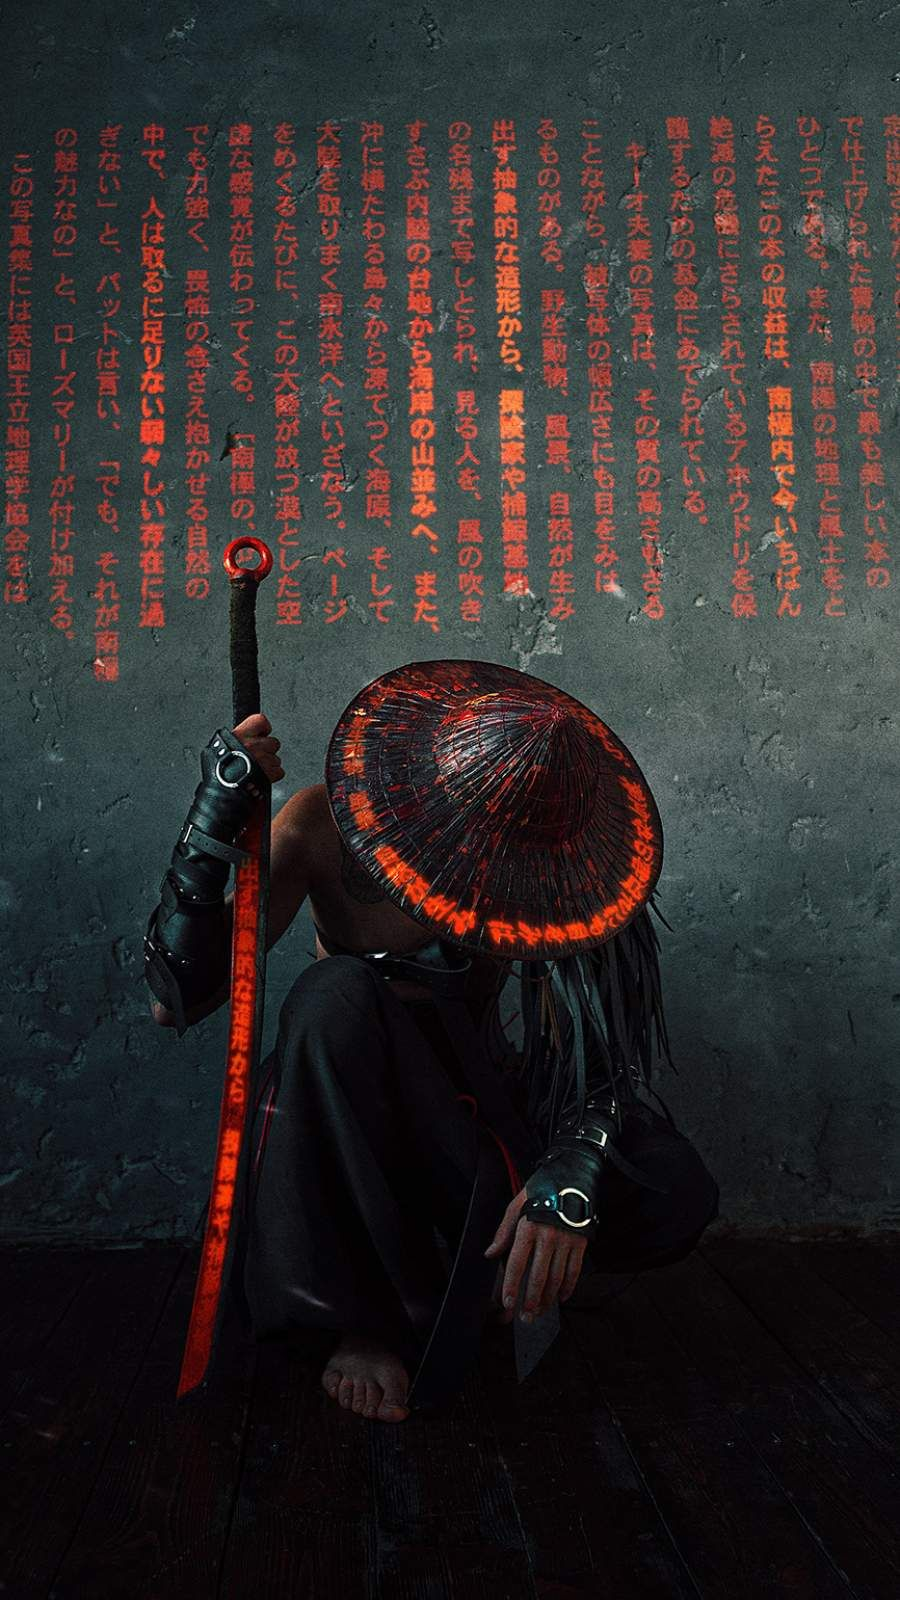 The Samurai Iphone Wallpaper Samurai Art Samurai Artwork Cyberpunk Art